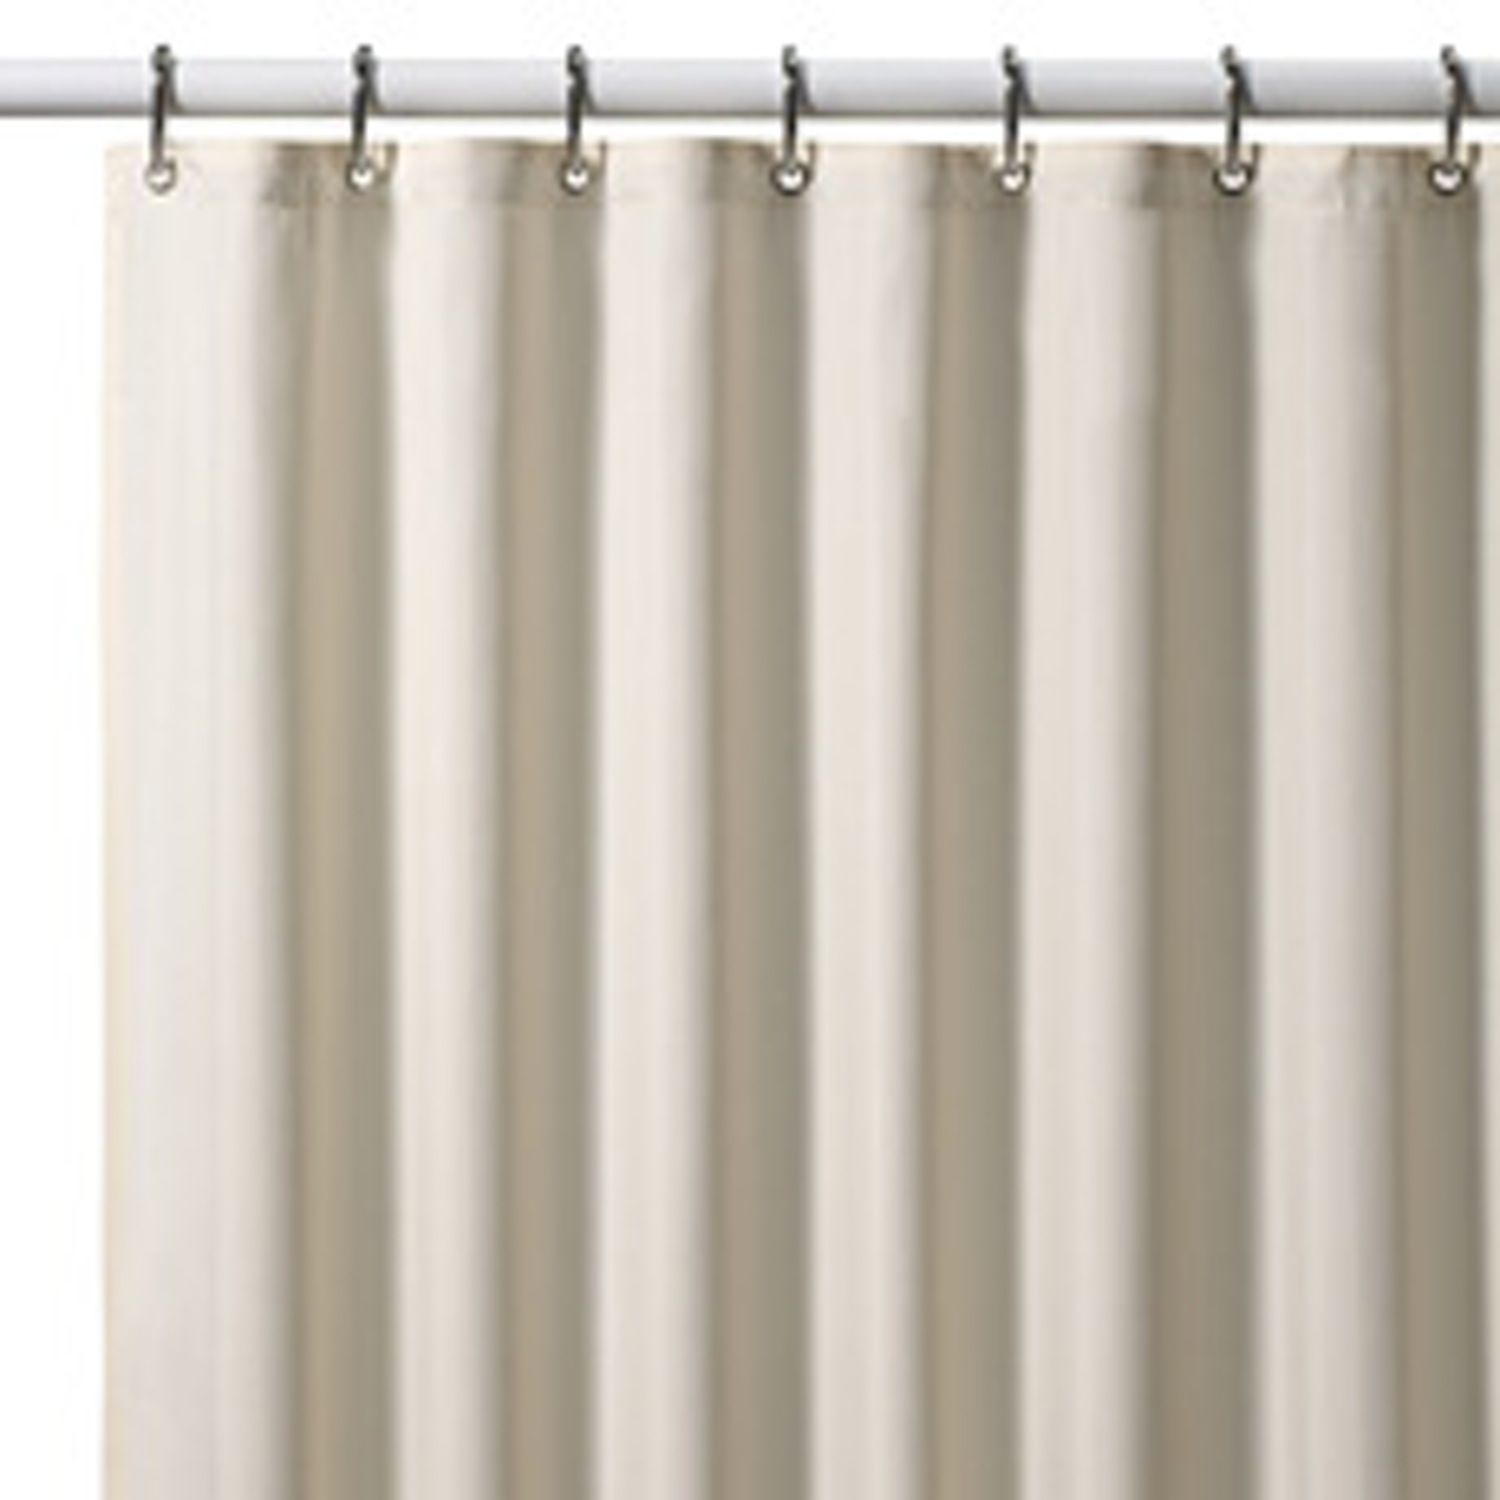 Charmant Best Products: Hotel Shower Curtain Liner